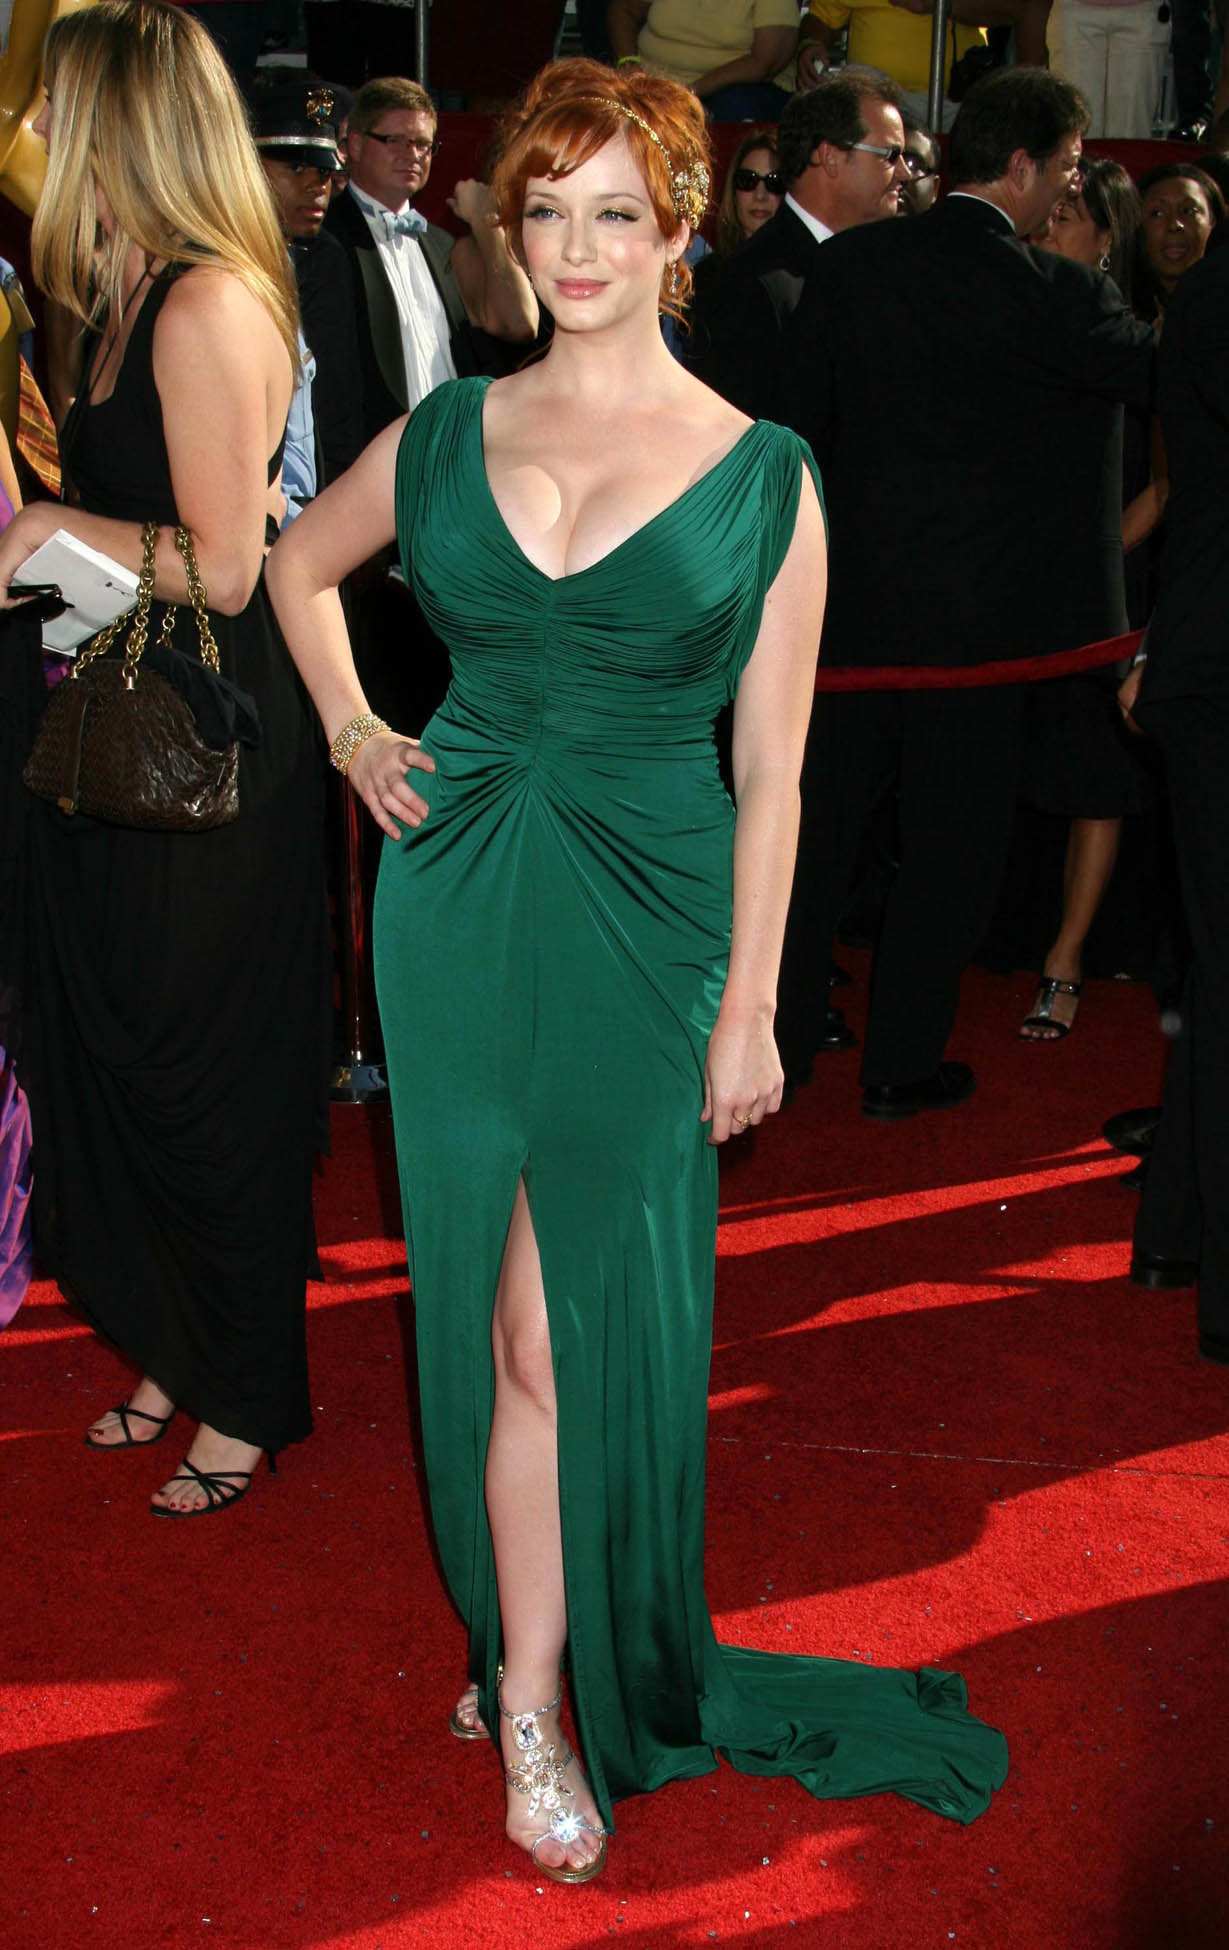 christina hendricks wearing green gown